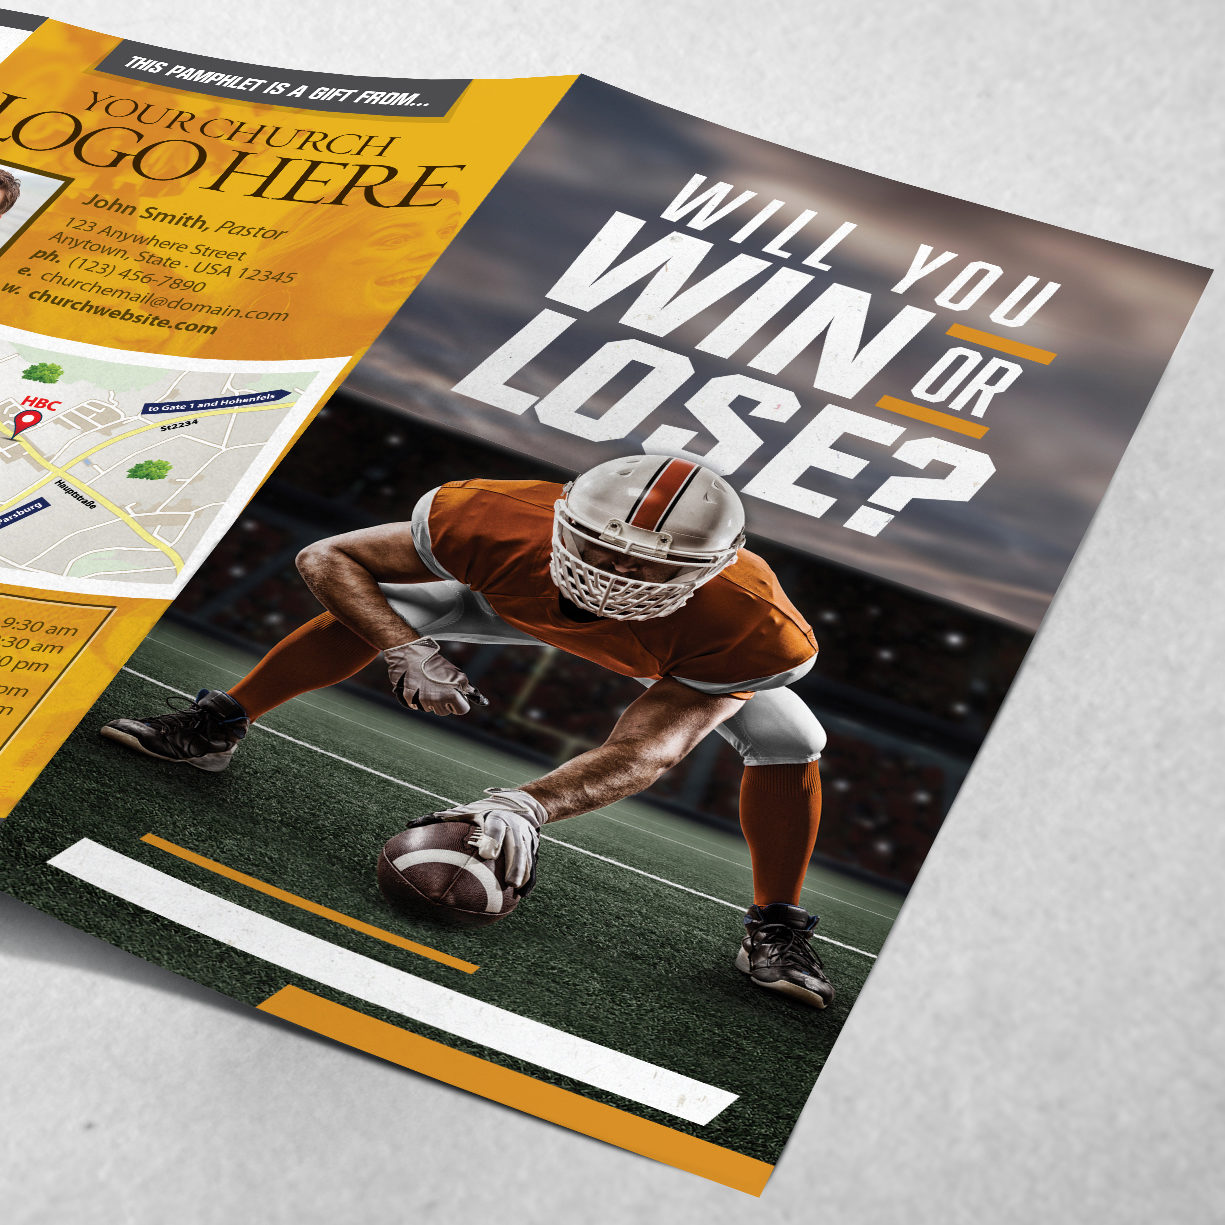 1118A-110 Win or Lose Football TRACT_MOCKUP_Angle - 01_Square